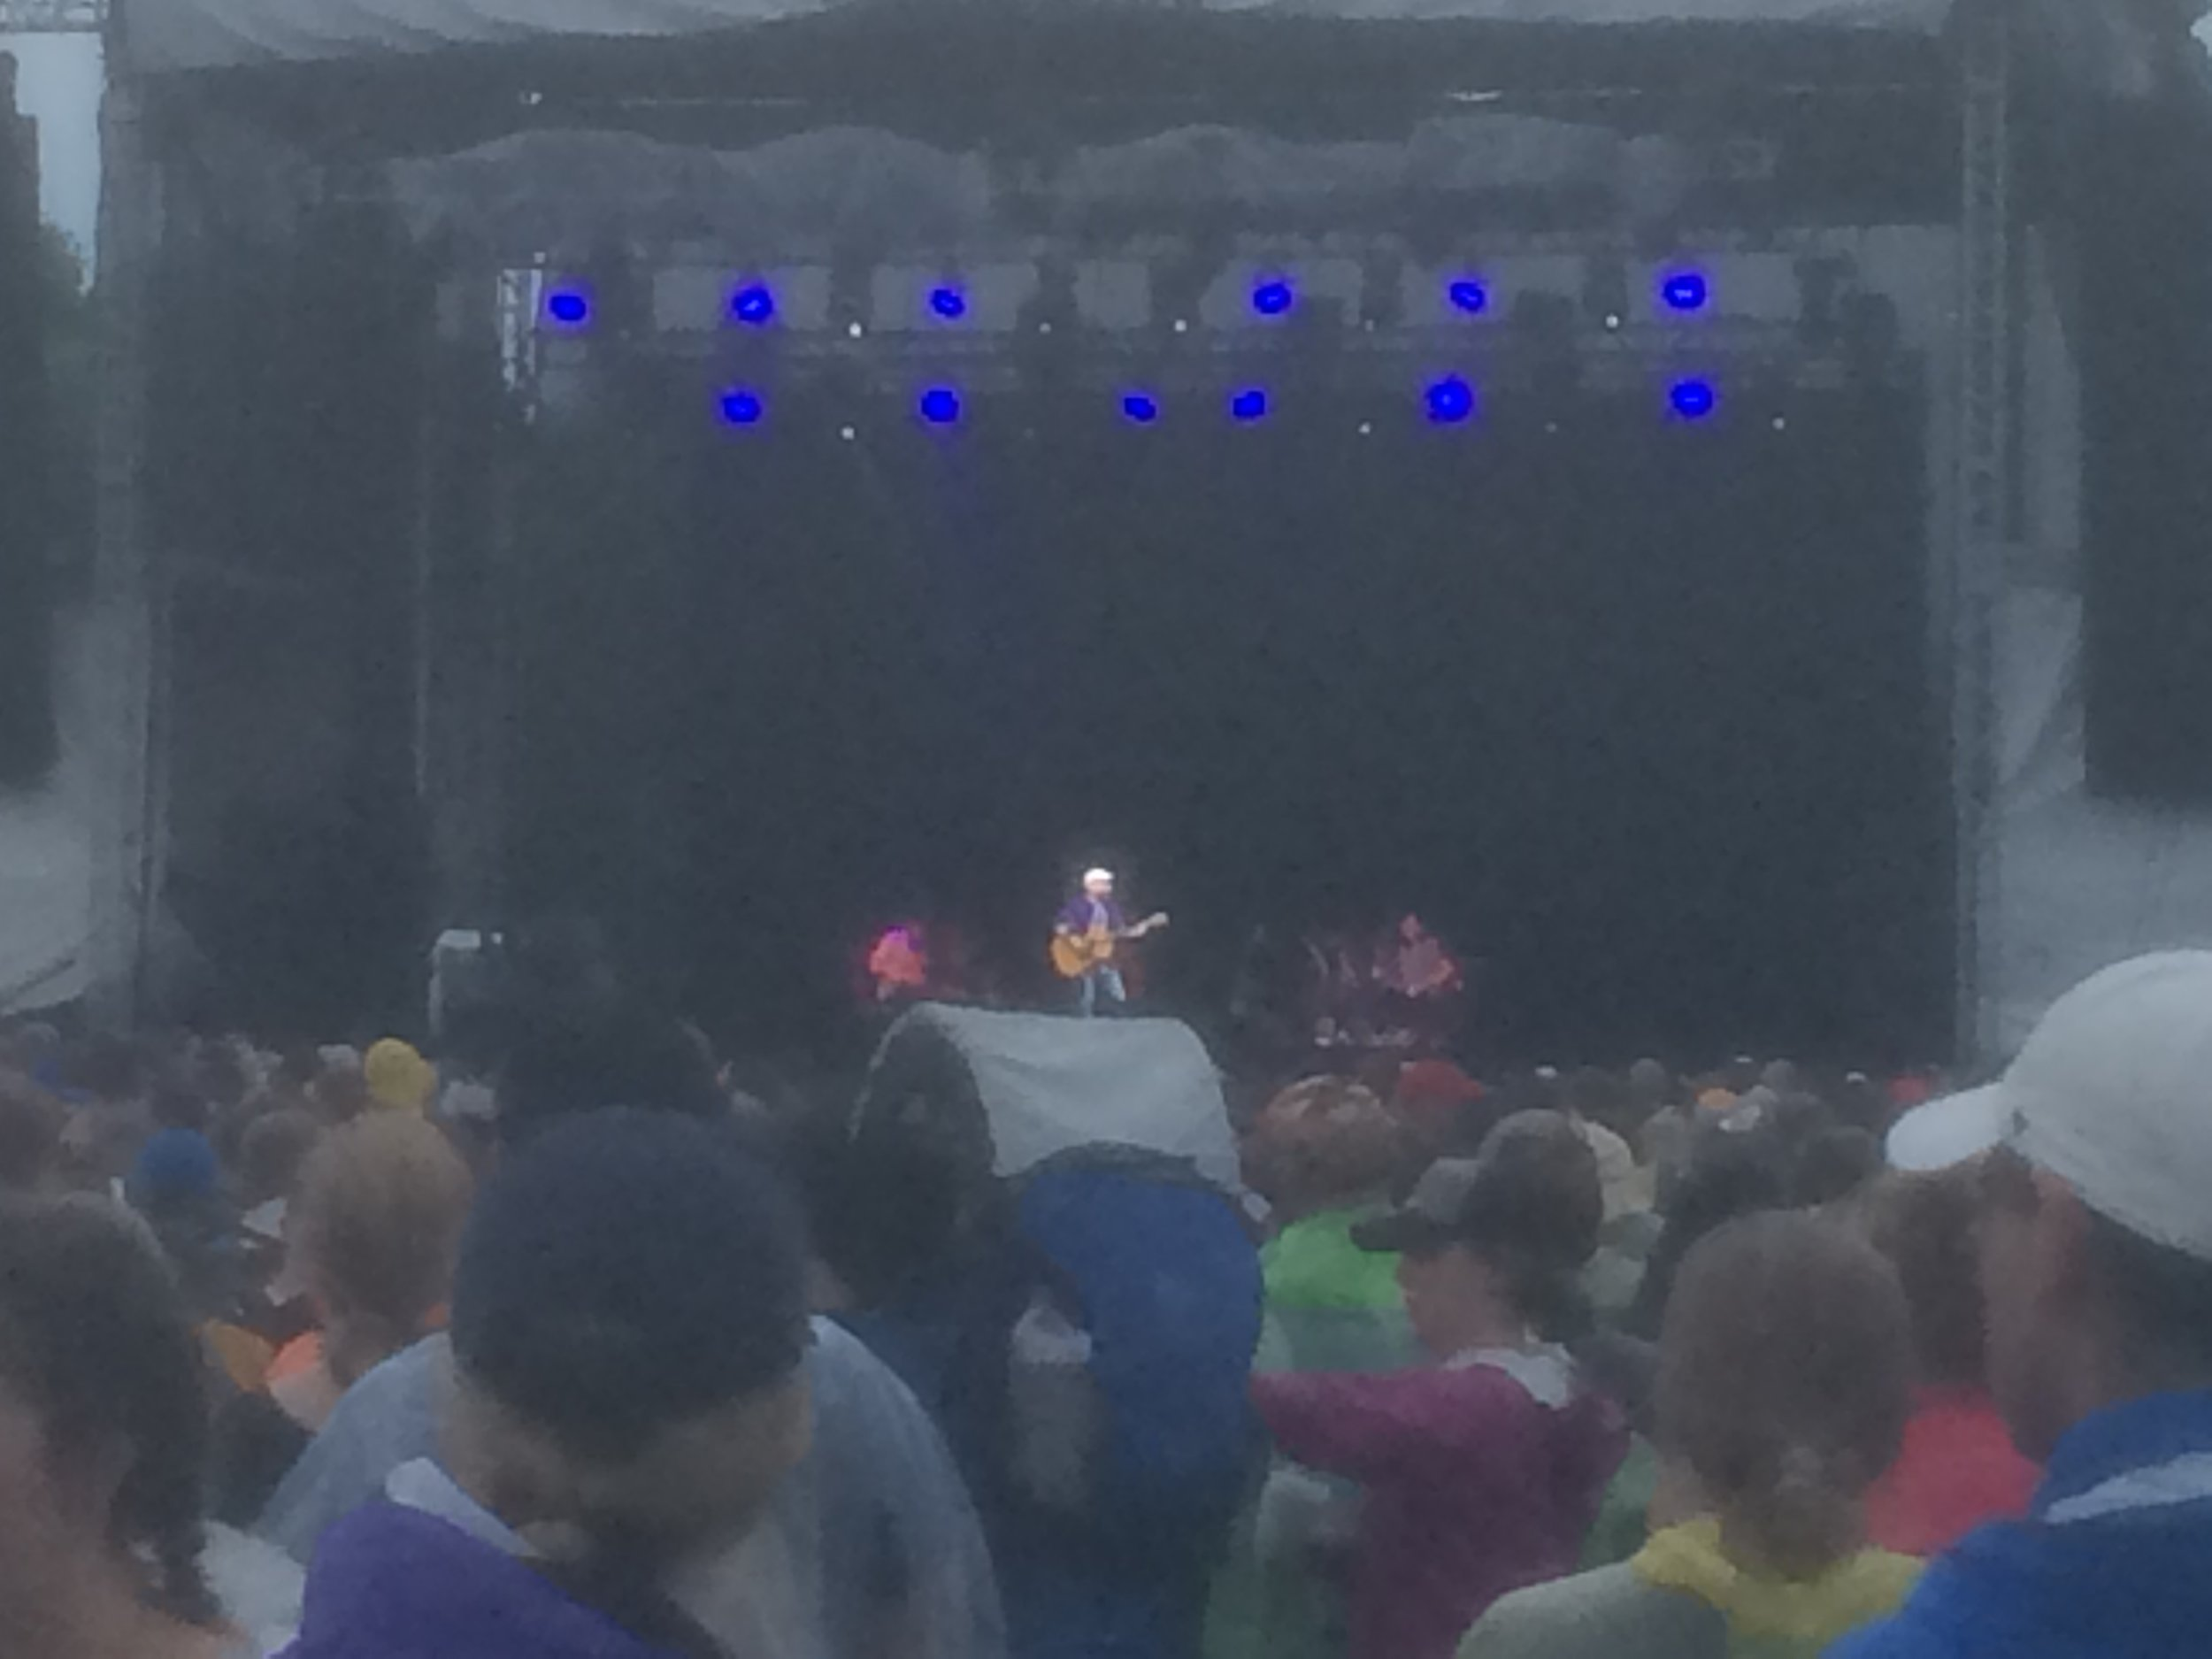 Paul Simon with yMusic. Apologies for the cell phone pictures!